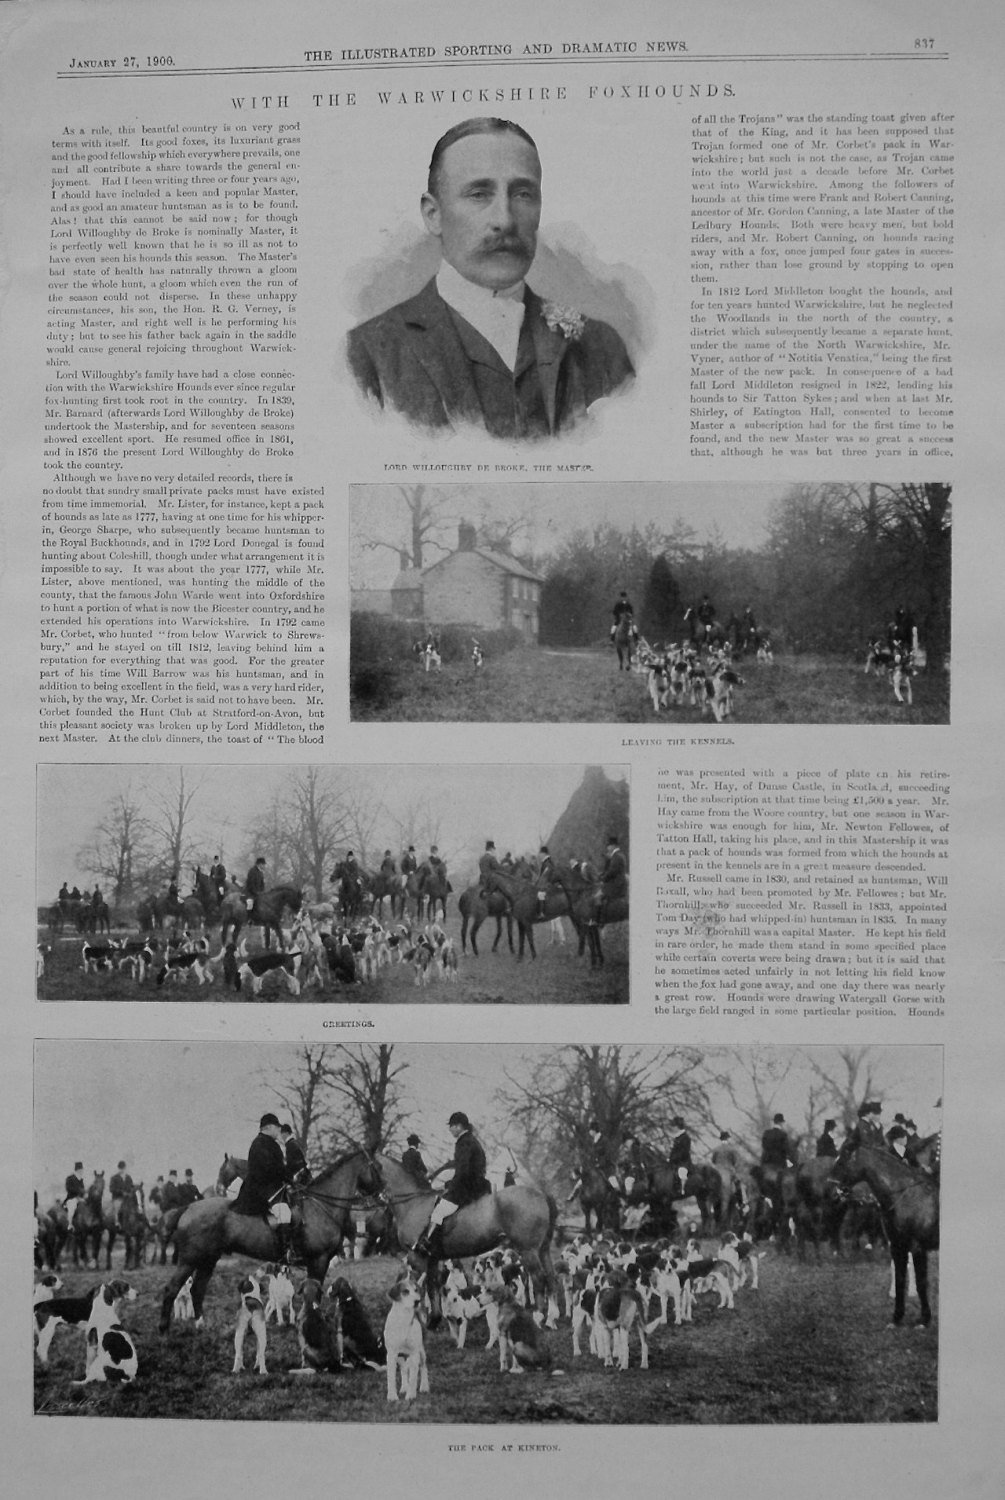 With the Warwickshire Foxhounds. 1900